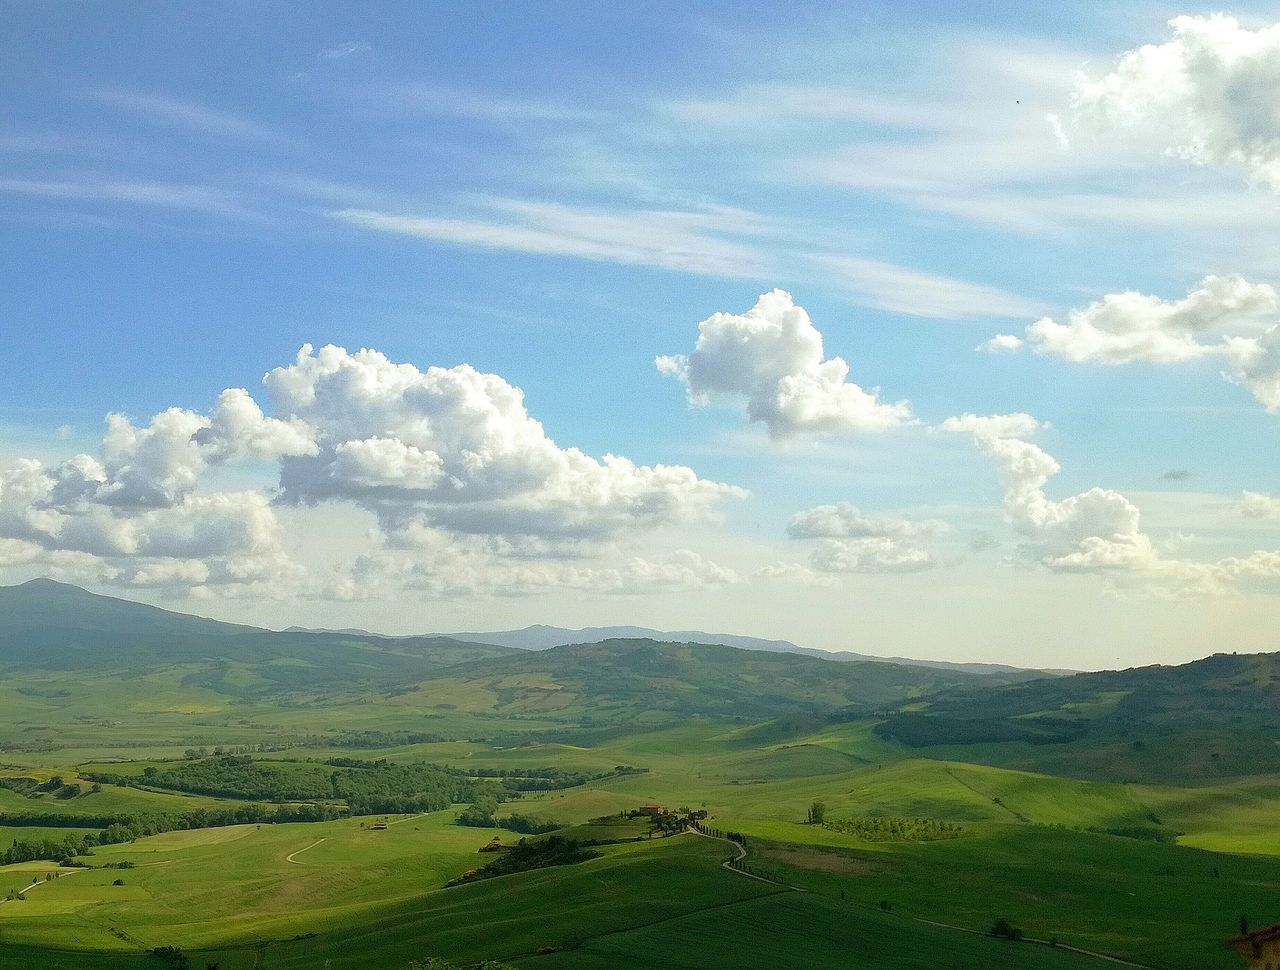 La finestra sulla val d'orcia....Pienza....The Great Outdoors - 2017 EyeEm Awards Nature Beauty In Nature Sky No People Outdoors Day Cloud - Sky Scenics Growth Rural Scene Tea Crop Freshness Tree Tuscany View Tuscany Pienza Tuscany Are Pienza (toscana) Pienza